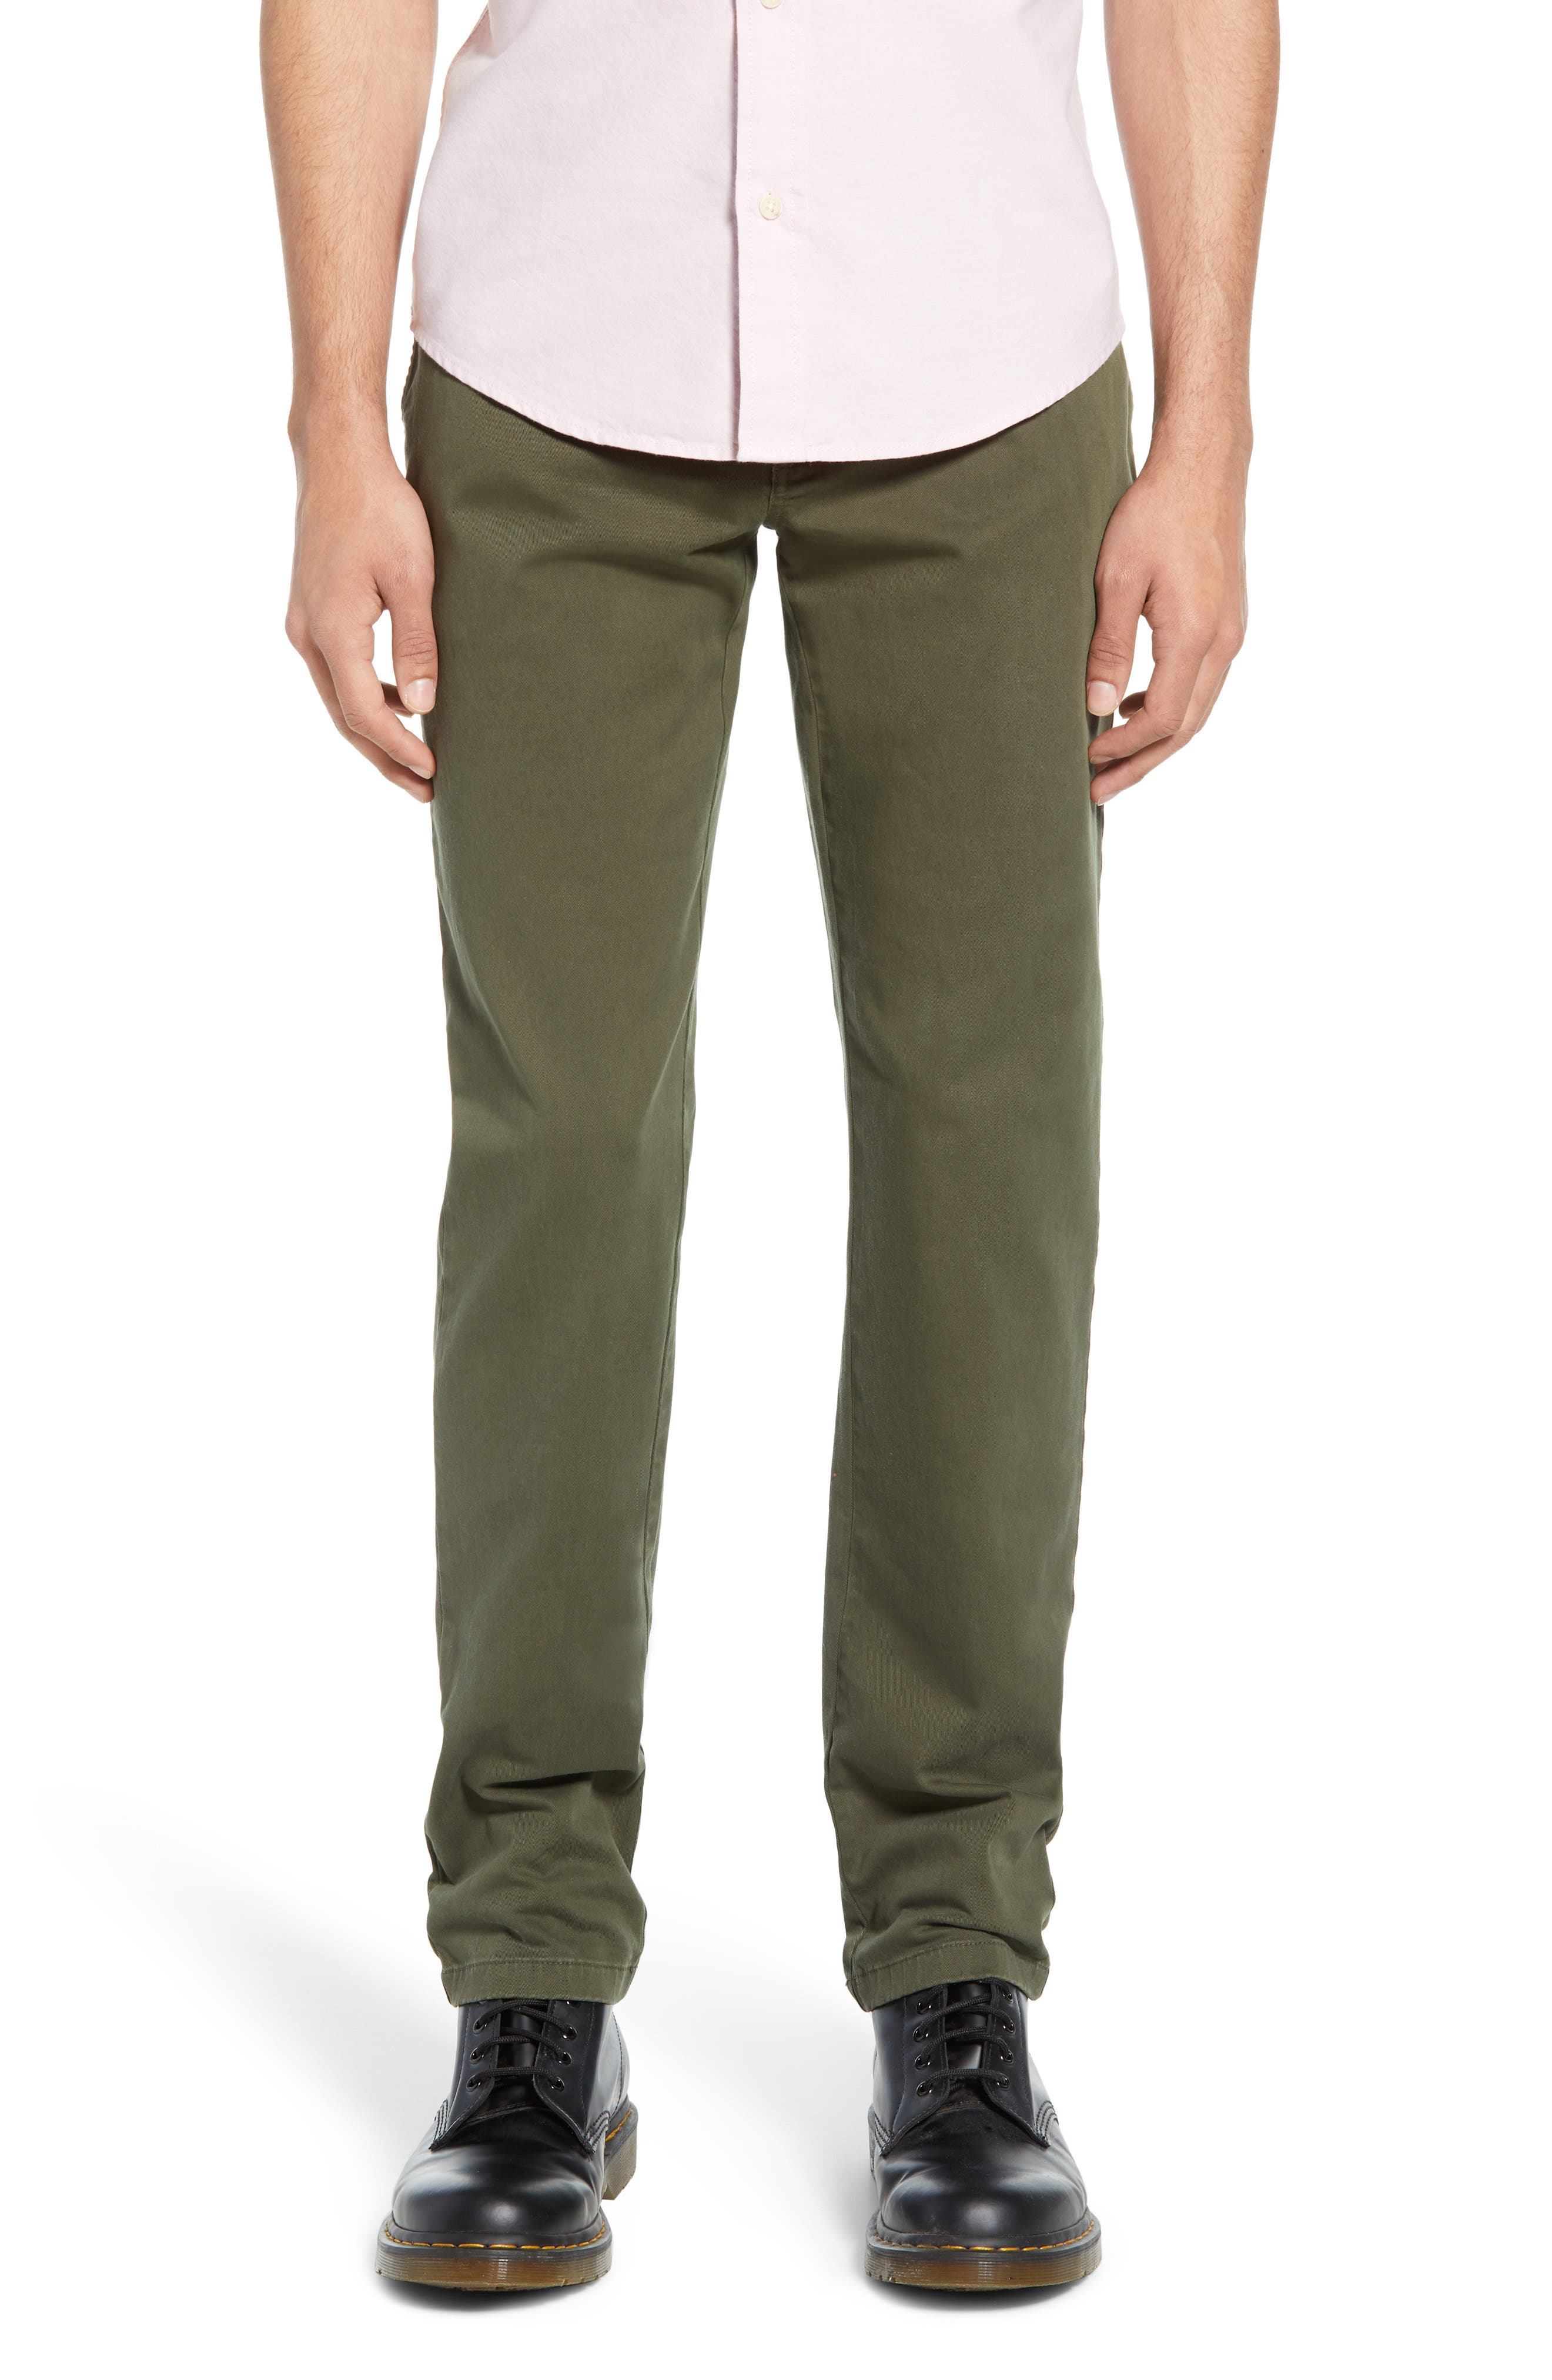 THE RAIL, Slim Fit Chinos, Main thumbnail 1, color, OLIVE GROVE